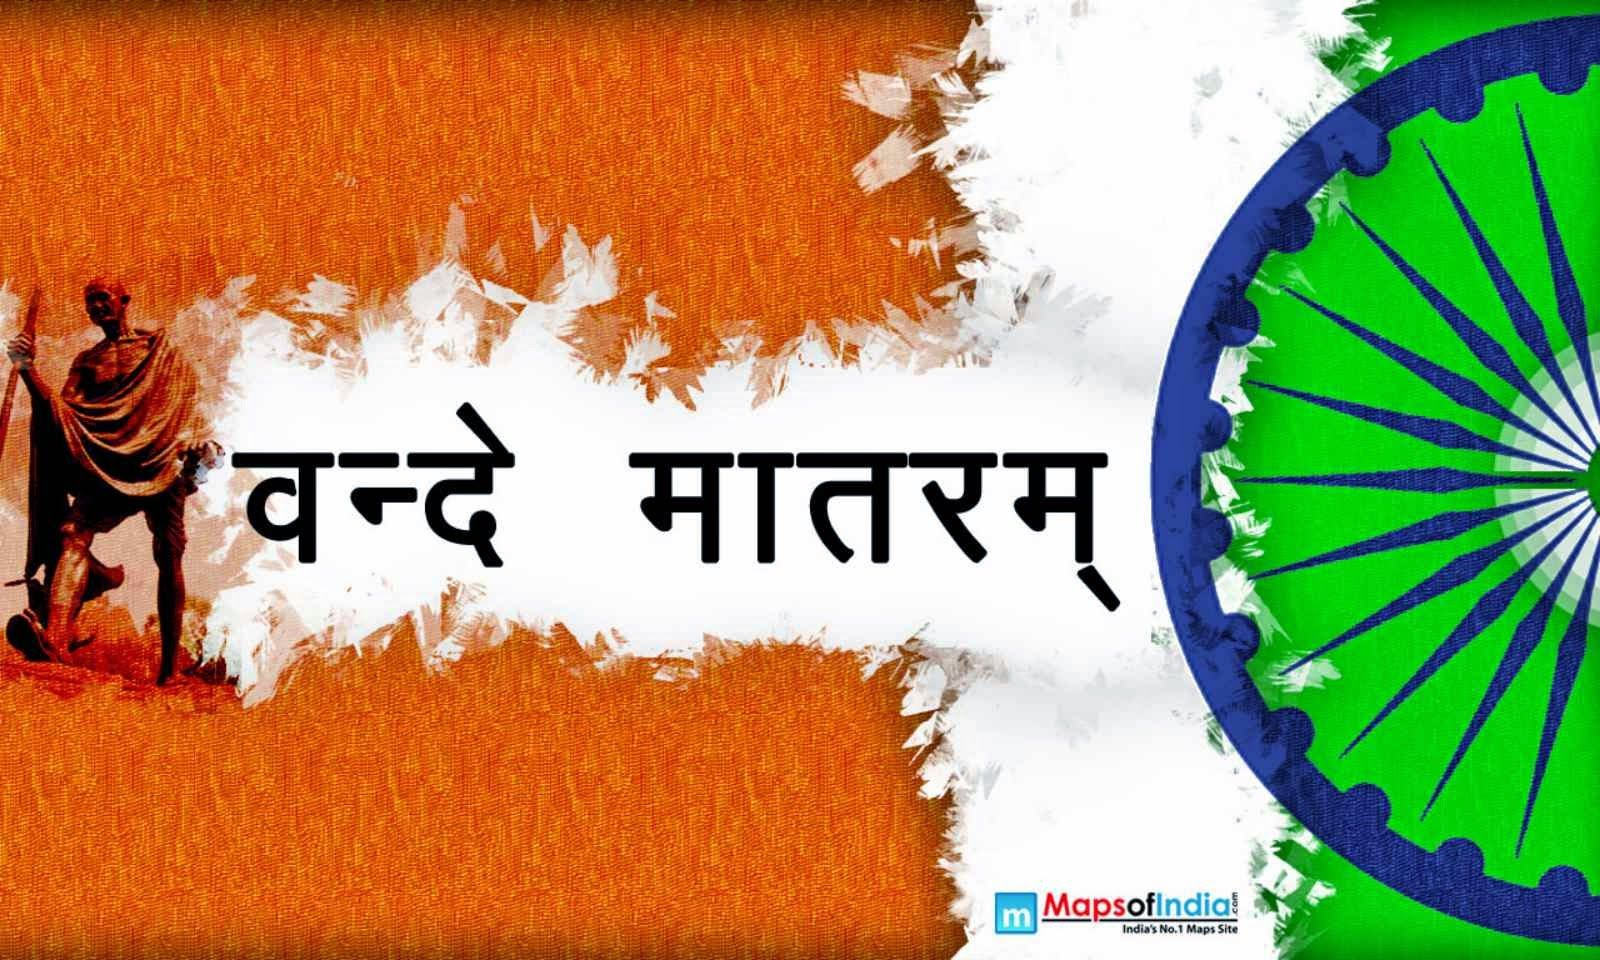 Happy Republic Day 2015 Wallpapers Happy Day 2015 Independence Day Images Happy Republic Day Wallpaper Independence Day Hd Happy republic day images in hindi